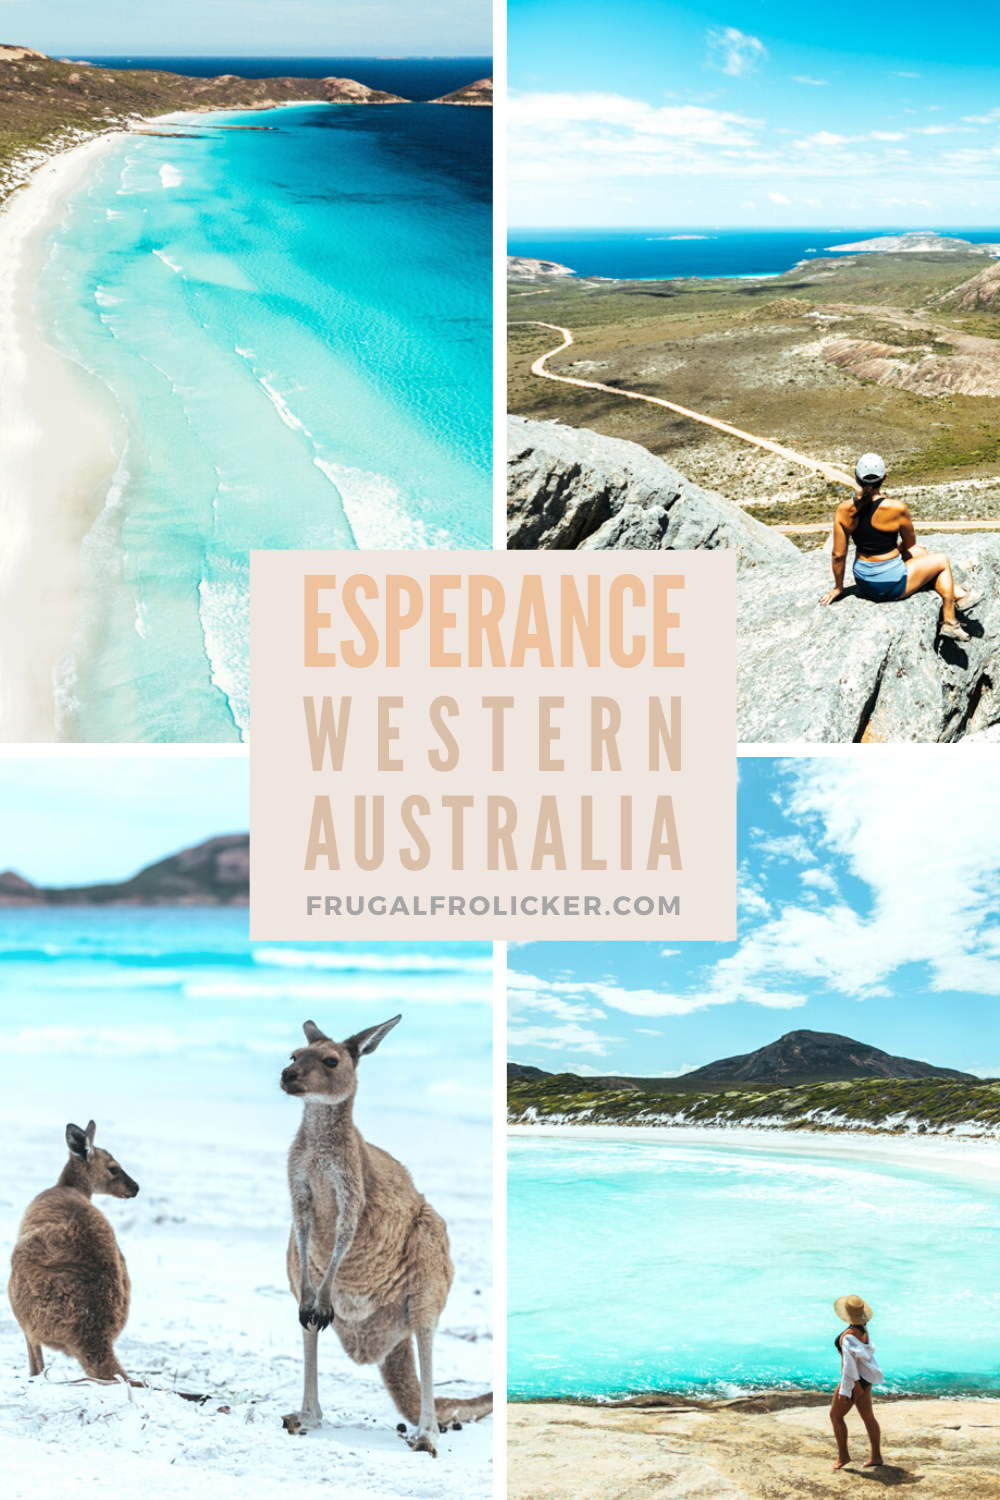 Things to do in Esperance: the best hikes, campsites, and beaches in Esperance